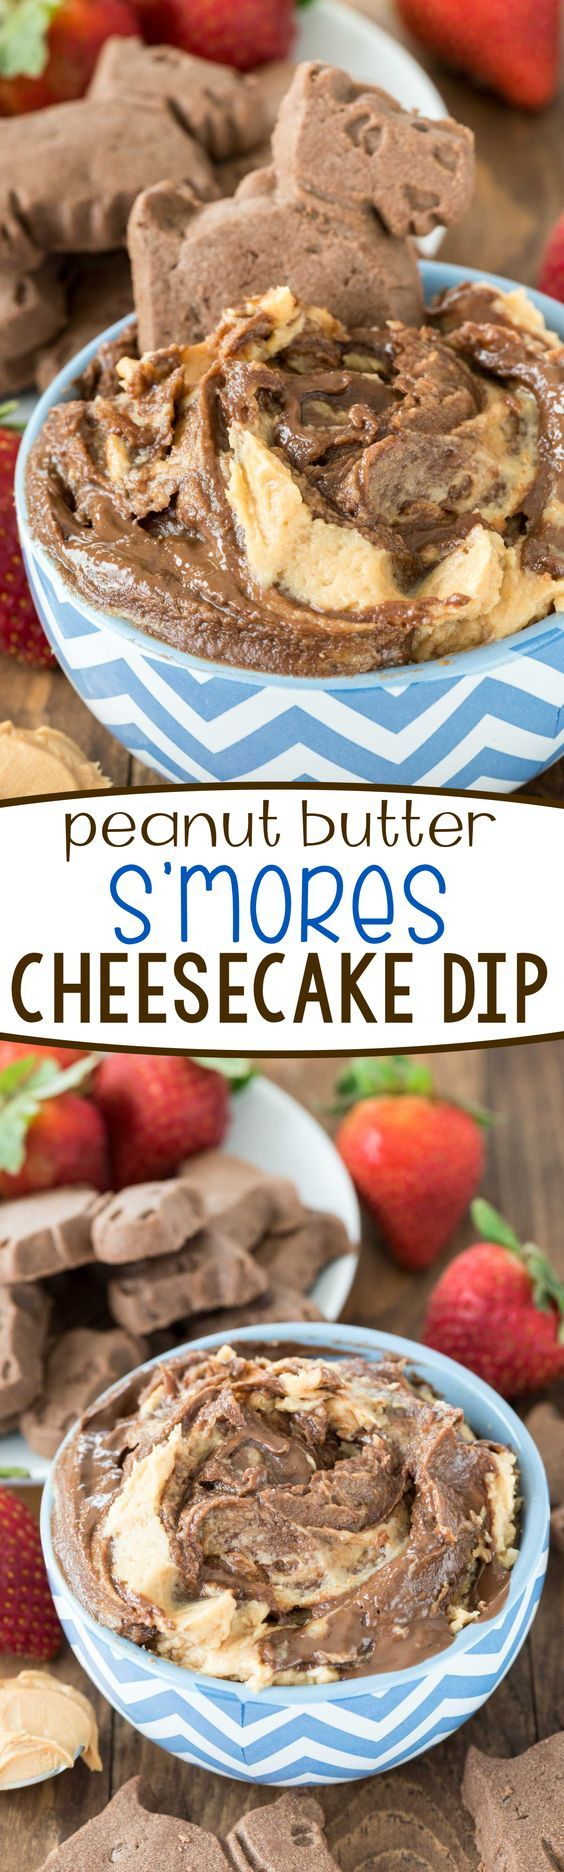 Peanut Butter S'mores Cheesecake Dip - this no bake easy cheesecake dip recipe…